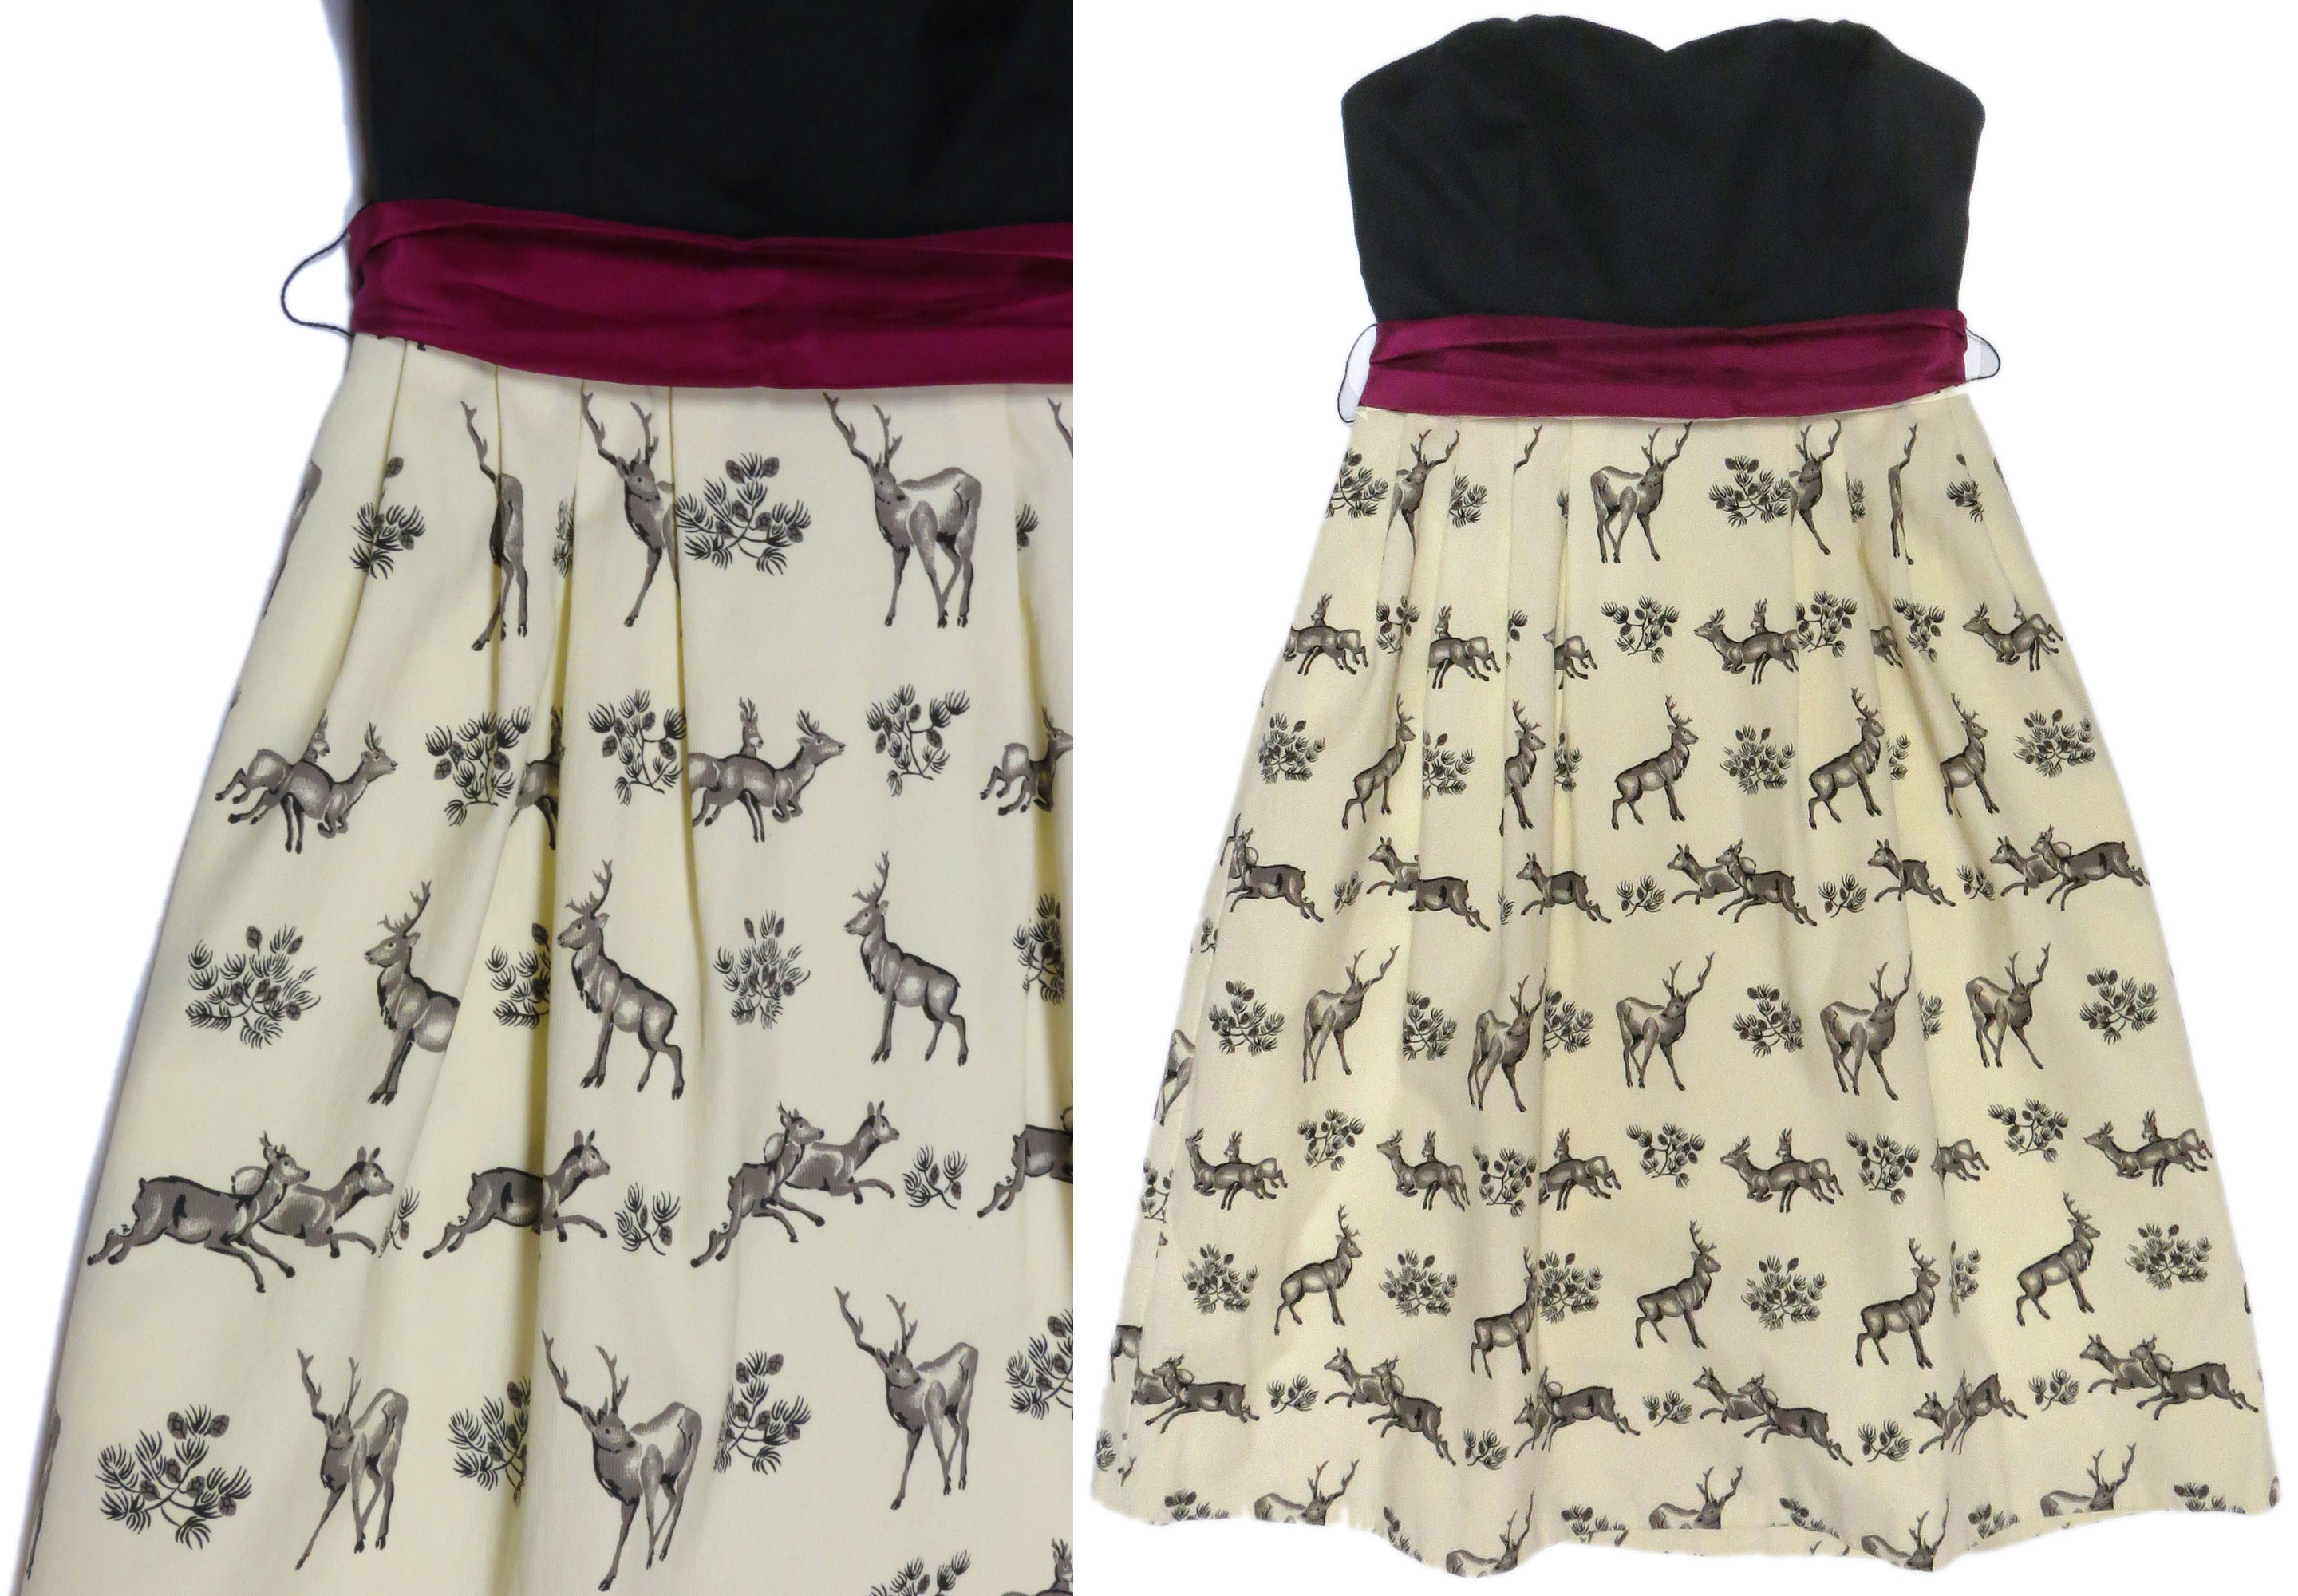 Strapless Deer Print Dress